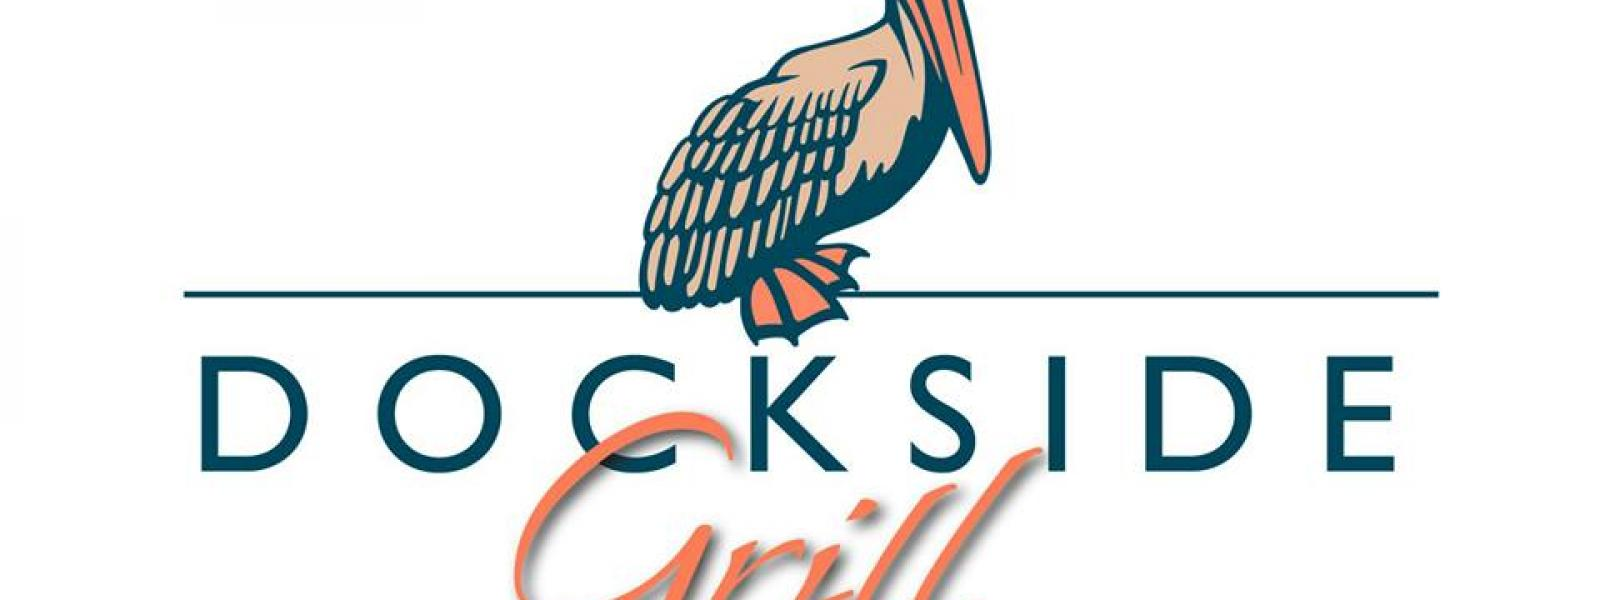 Dockside Grill on Sequim Bay